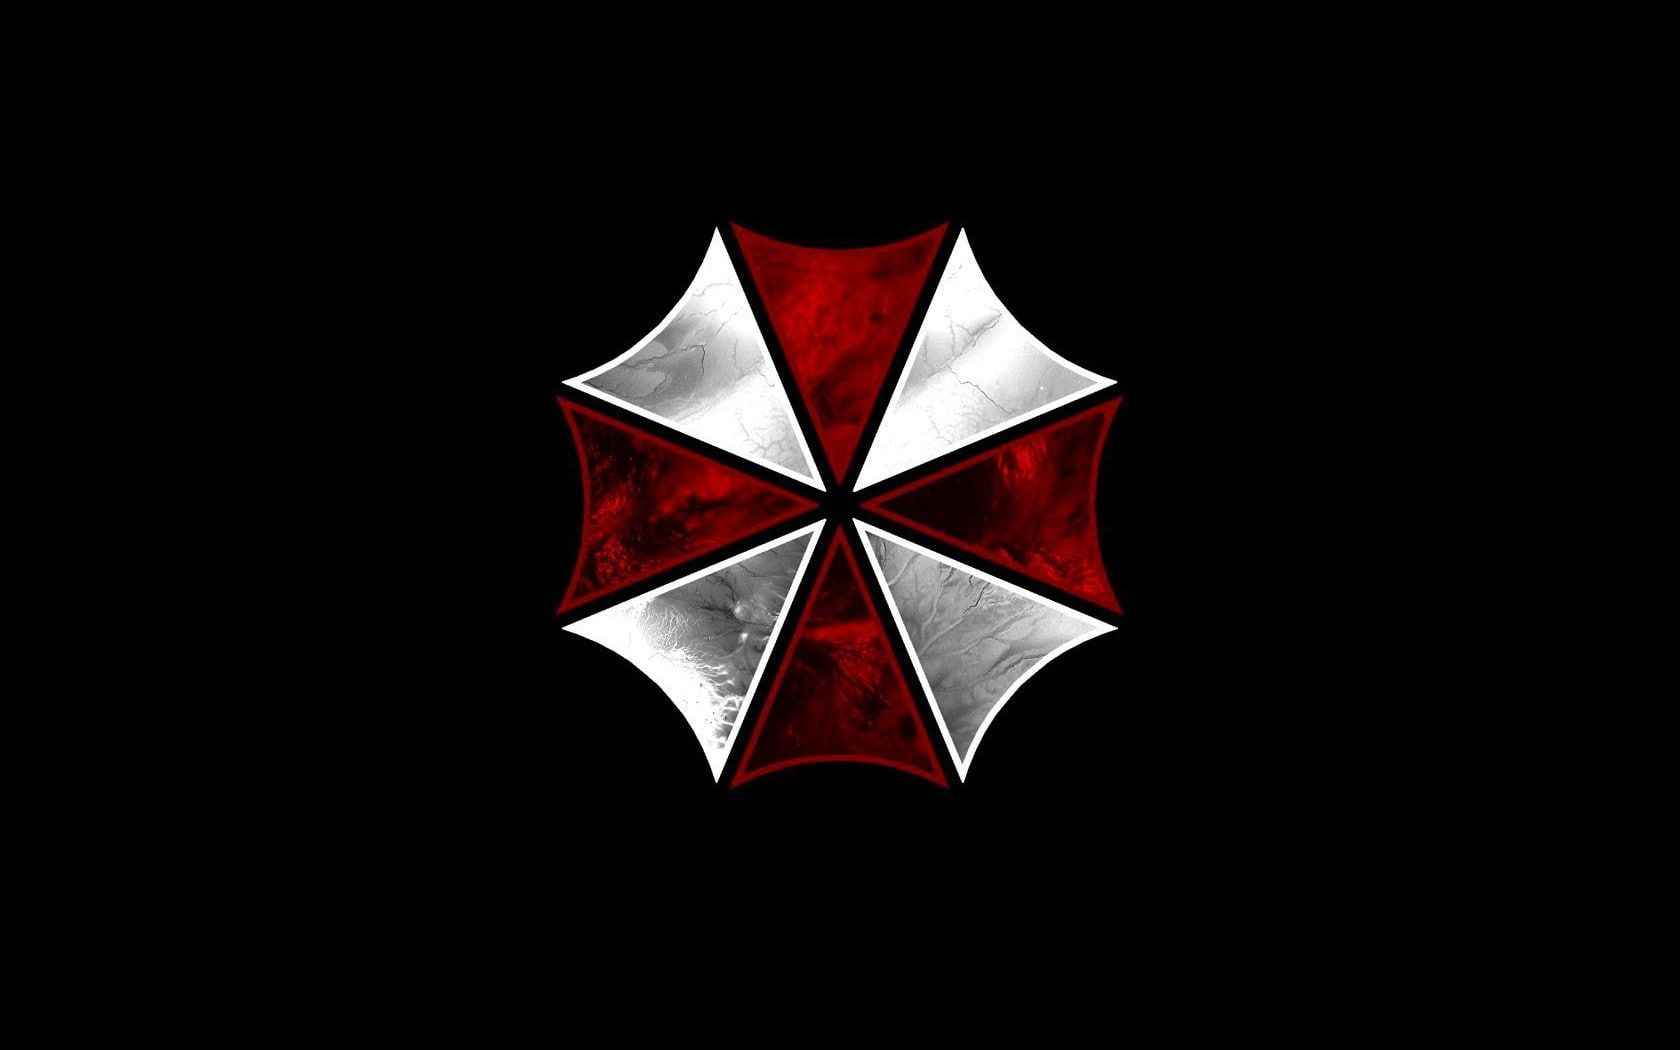 Umbrella Corporation Resident Evil Logo 720p Wallpaper Hdwallpaper Desktop Resident Evil Tattoo Resident Evil Movie Resident Evil